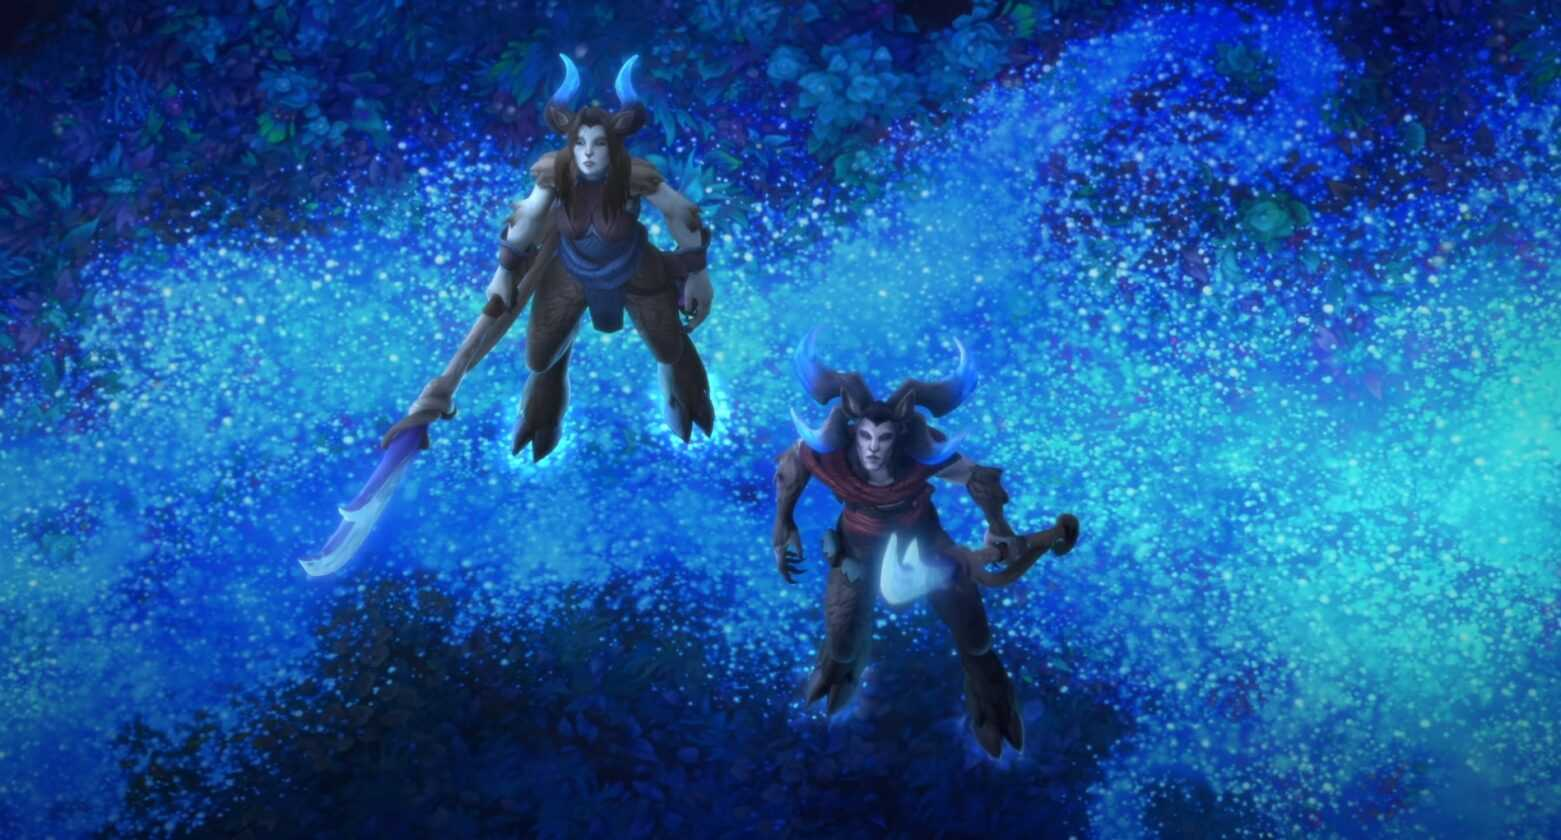 Blizzard Buffs Frost Mage In Upcoming World Of Warcraft: Shadowlands Patch